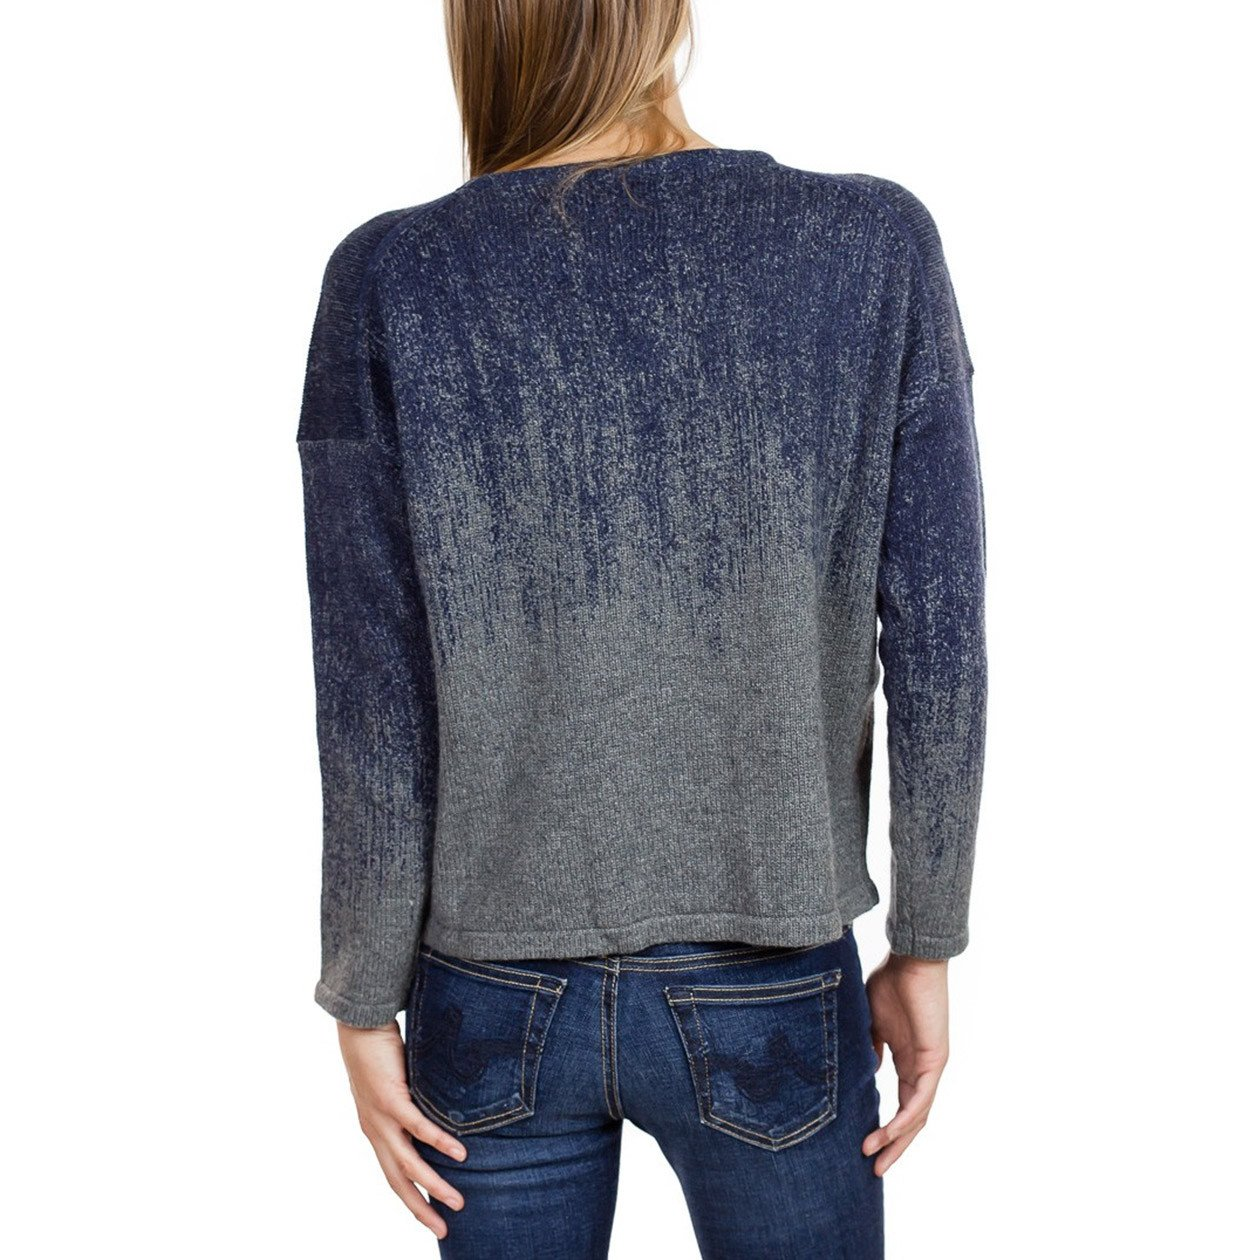 Fine Collection Womens Ombre Crewneck Sweater Heather Grey/Navy XS by Fine Collection (Image #3)